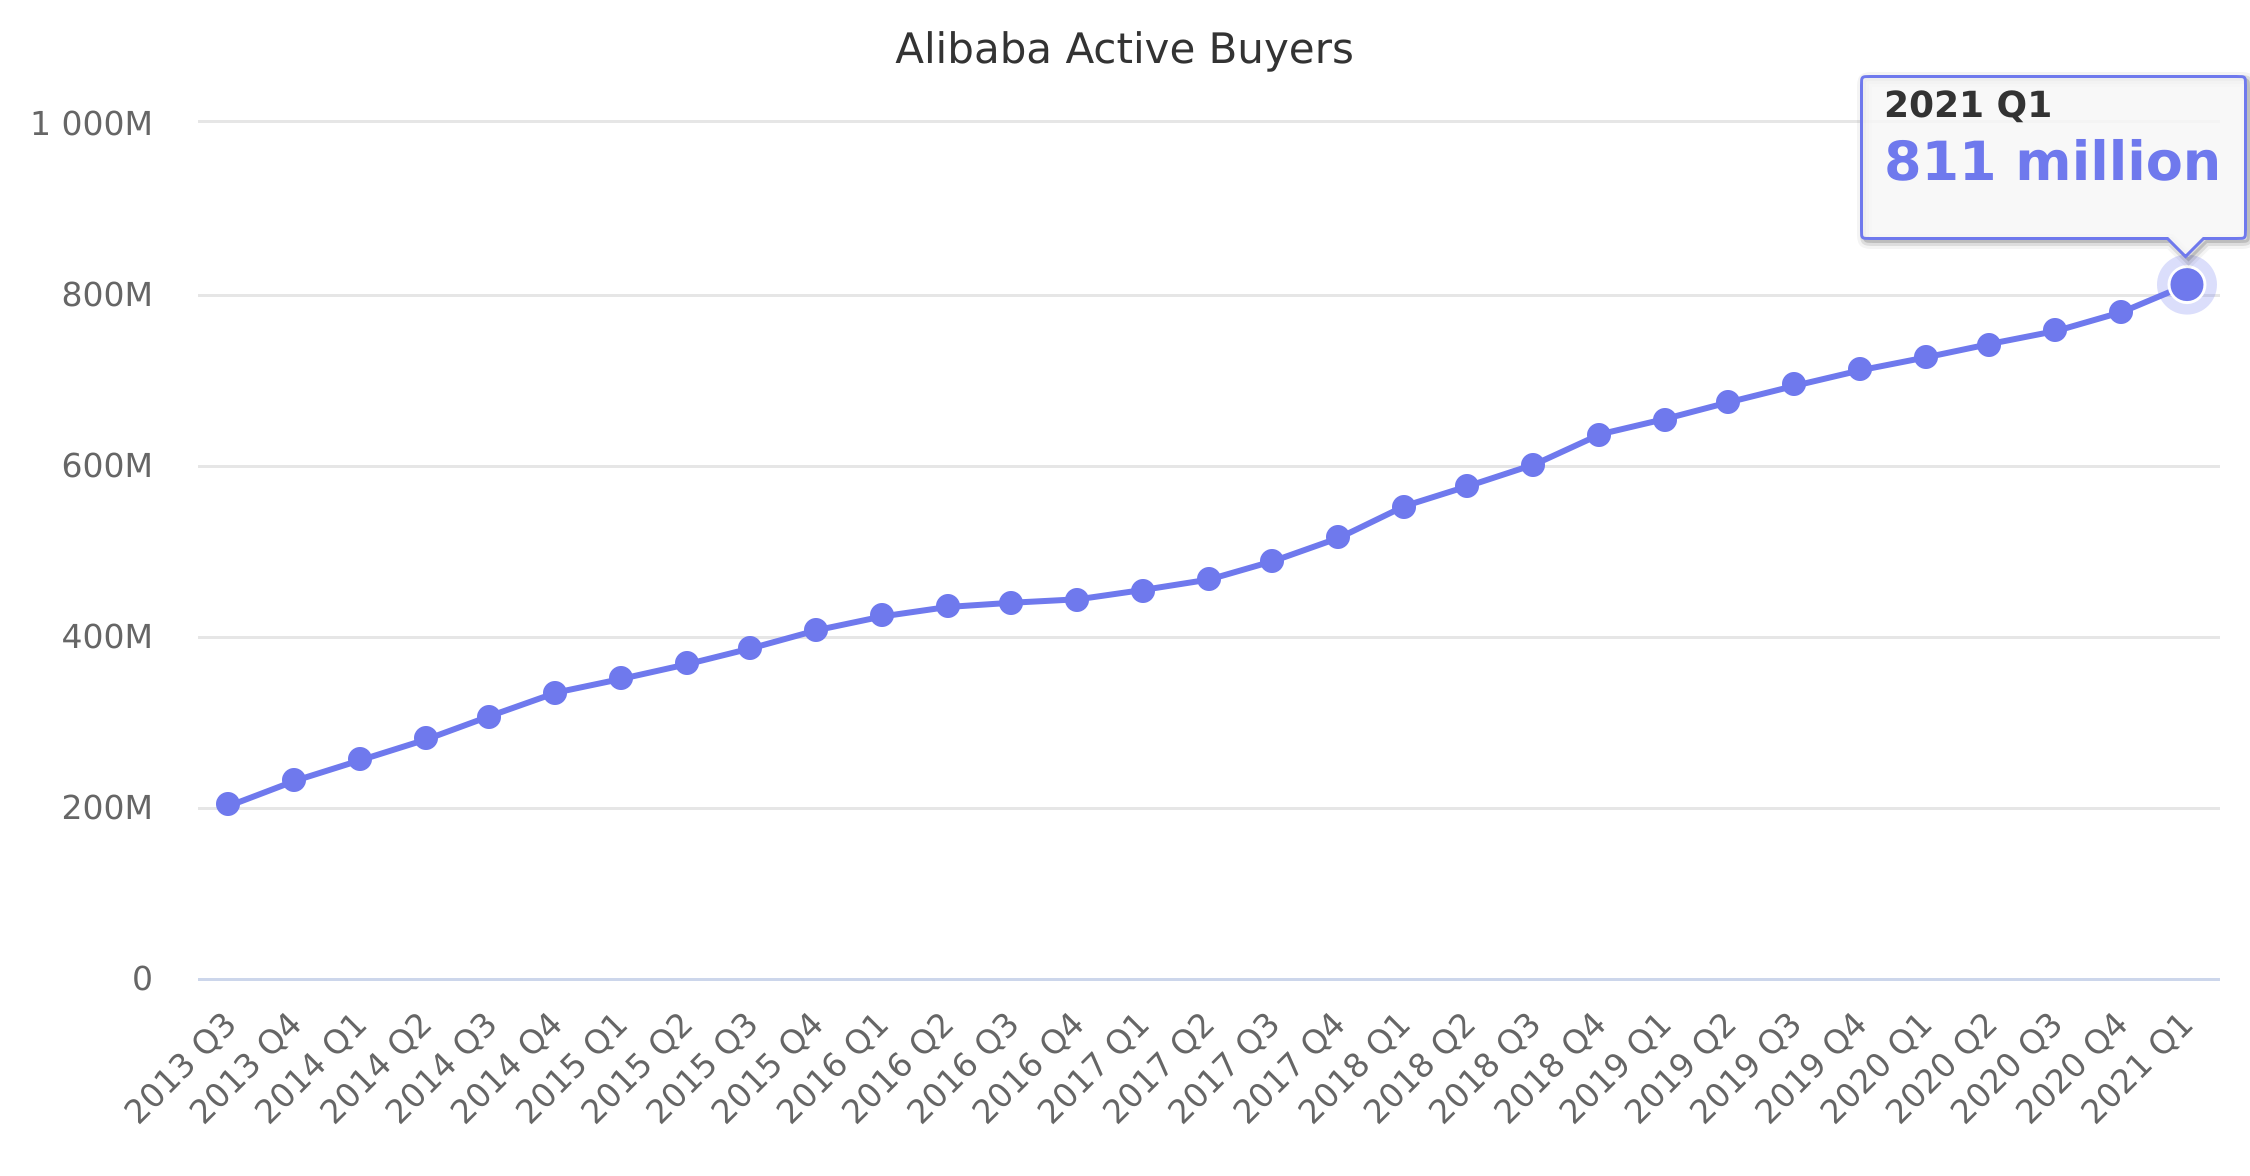 Alibaba Active Buyers 2013-2017